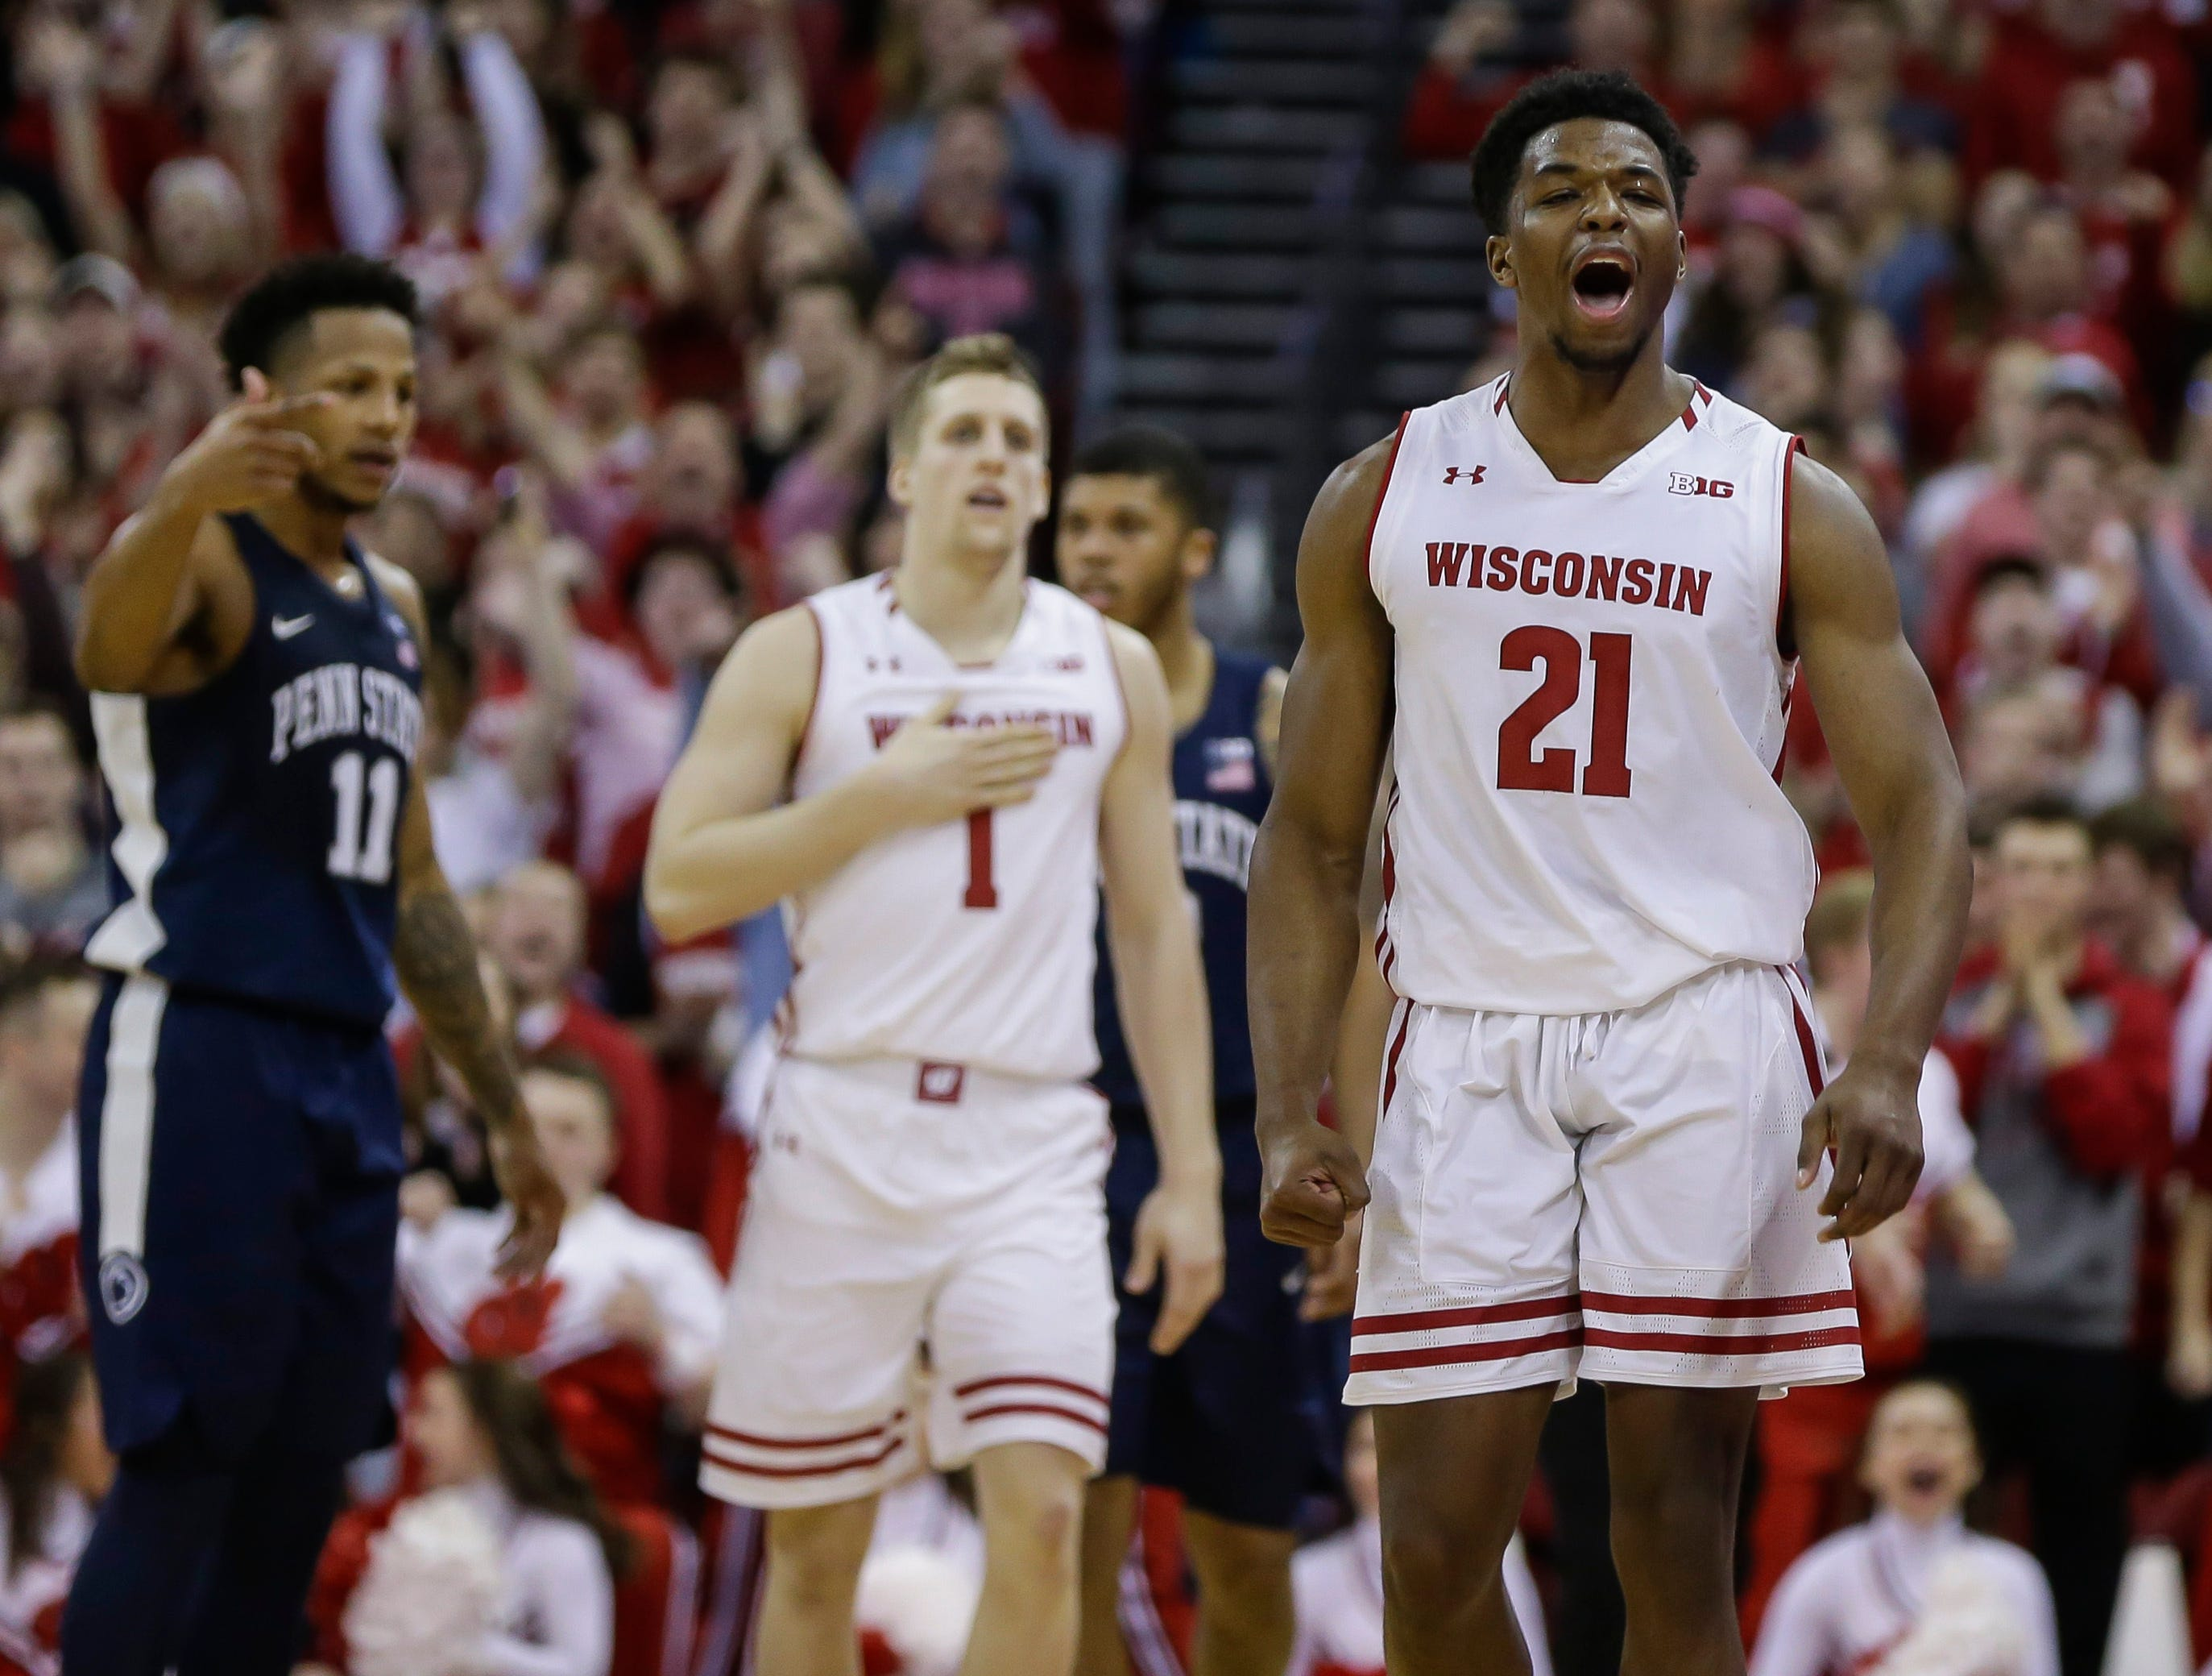 4. Wisconsin (20-9, 12-6) – The Badgers missed a chance to solidify themselves in the top four of the conference with an overtime loss at Indiana early in the week but bounced back to getting past a pesky Penn State team. The opportunity for the double-bye in the conference tournament is still out there if the Badgers can take care of business in the final week with a home game against Iowa followed by a trip to Ohio State to close the season. Last week: 5.